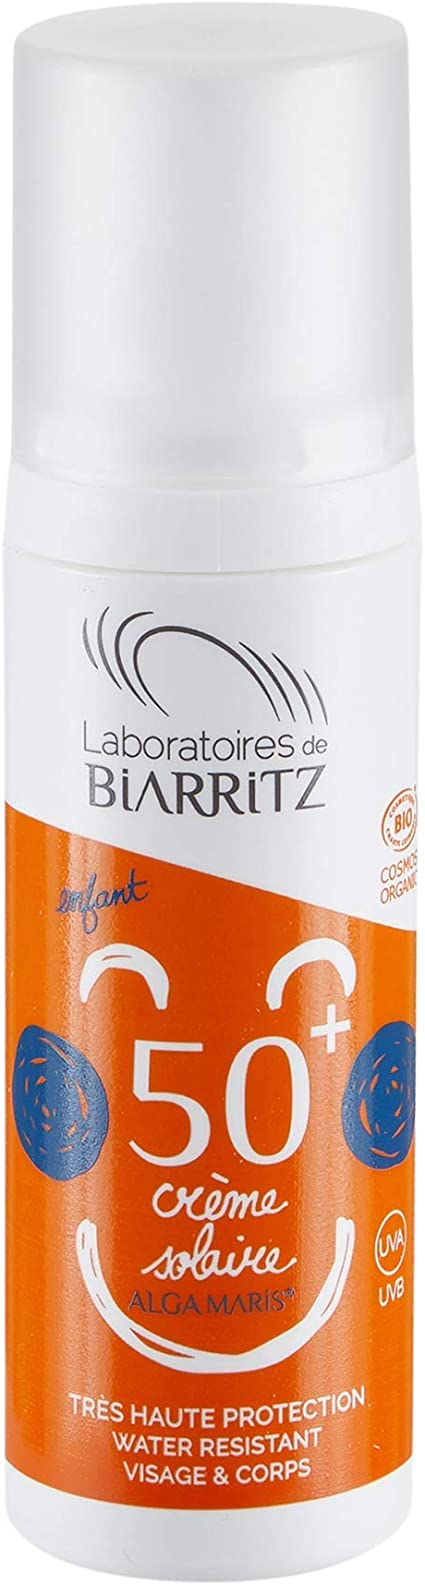 Alga Maris Lab Biarritz Crema 100 Gr Amazon Es Belleza